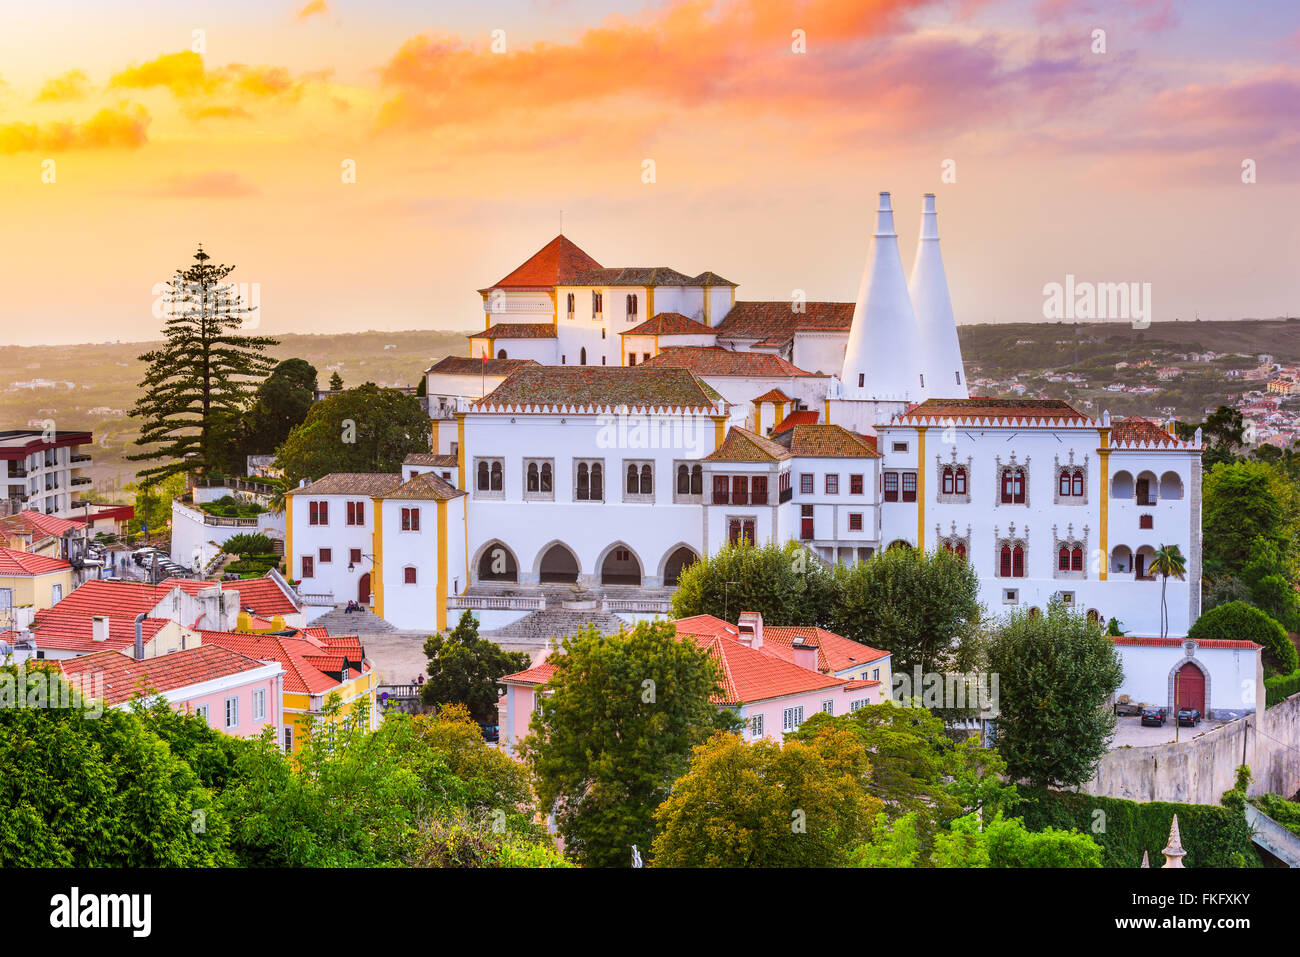 Sintra, Portugal old city at Sintra National Palace. - Stock Image